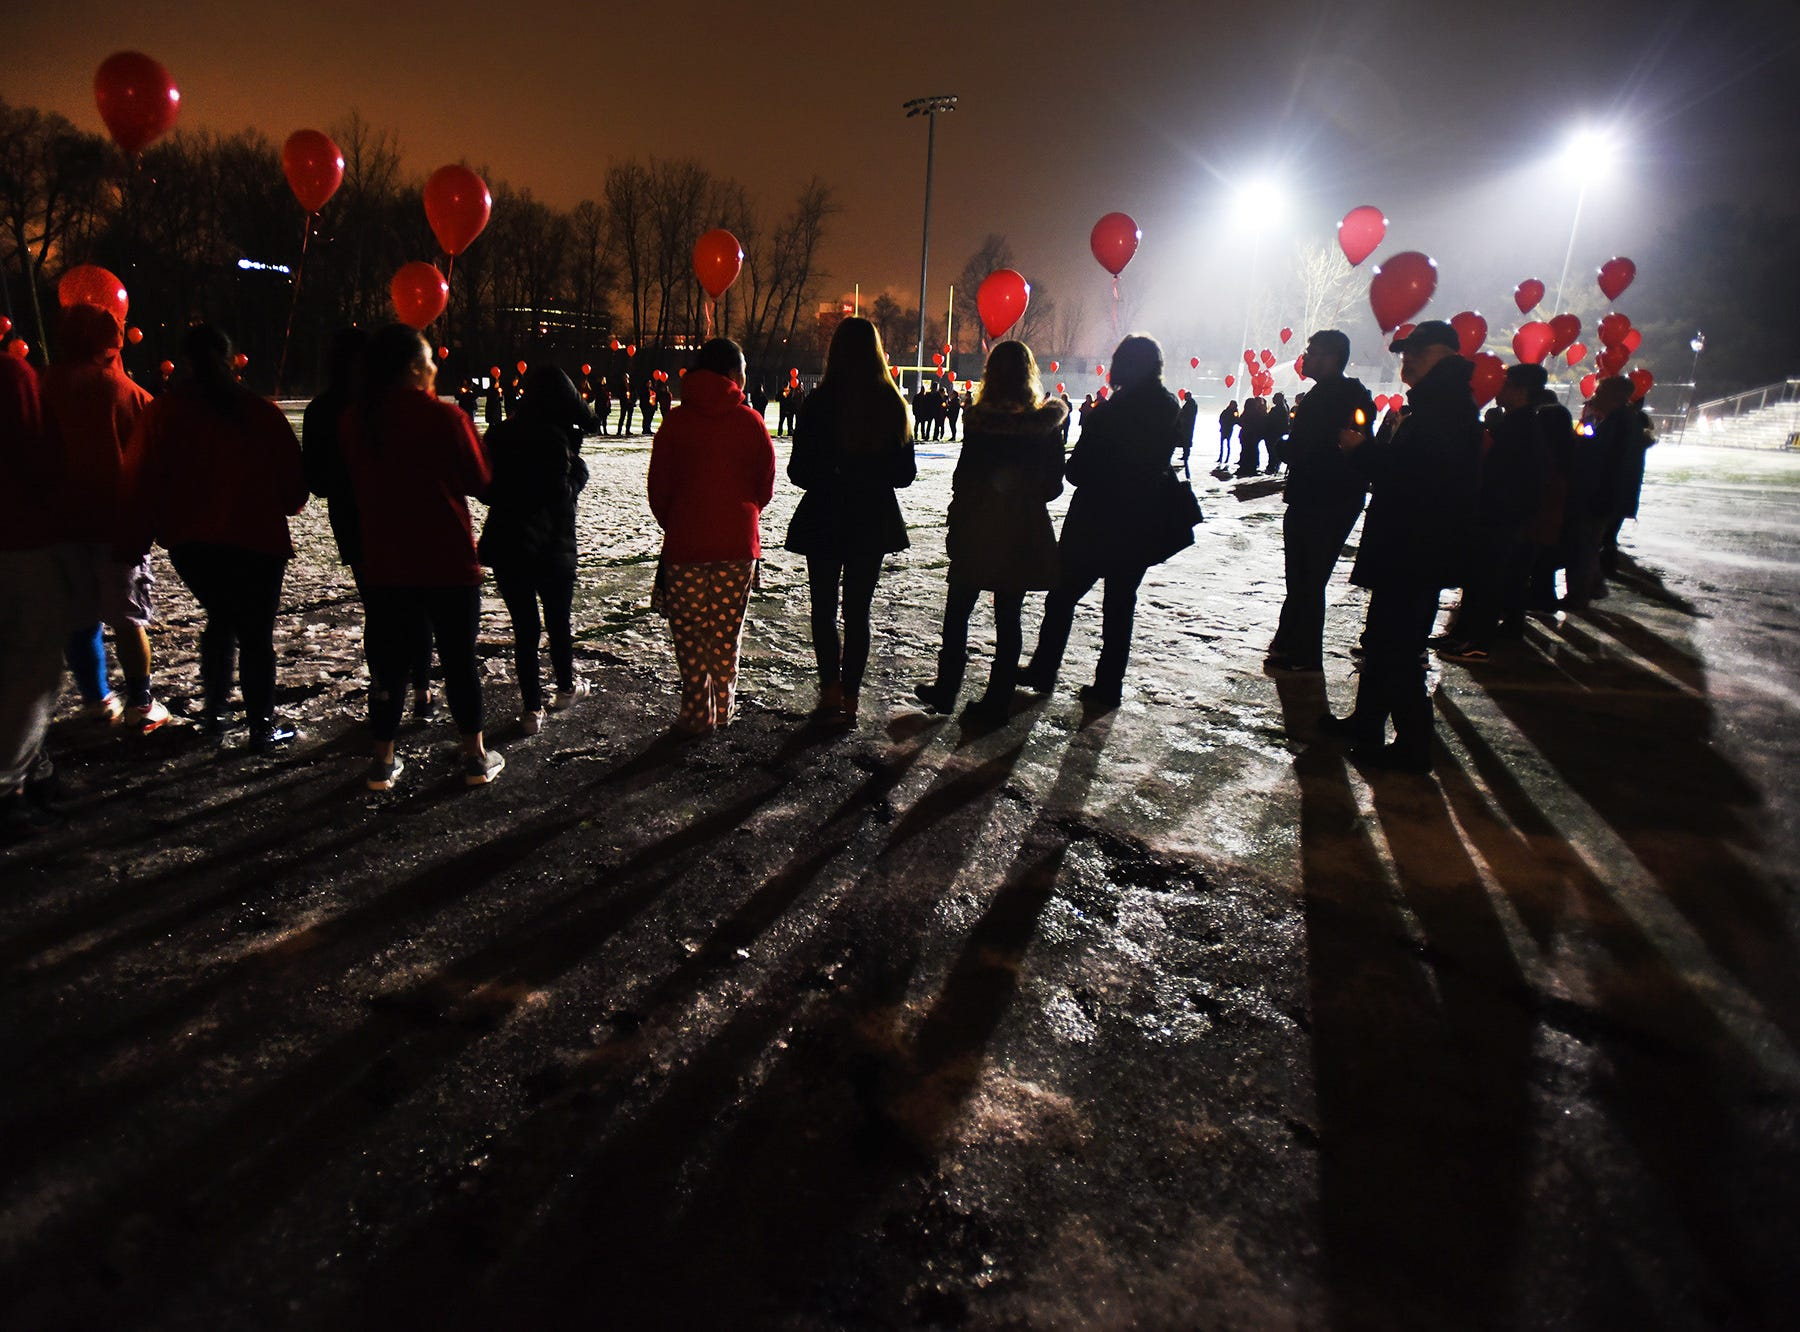 """Participates gather with red balloons during a  """"Community Remembrance Vigil"""" for Saddle Brook High School student Andrew Gutierrez at Veteran's Field in Saddle Brook on 02/19/18.  Andrew Gutierrez, a SBHS 10th grader, suddenly and unexpectedly passed away at home on Friday, February 16th."""